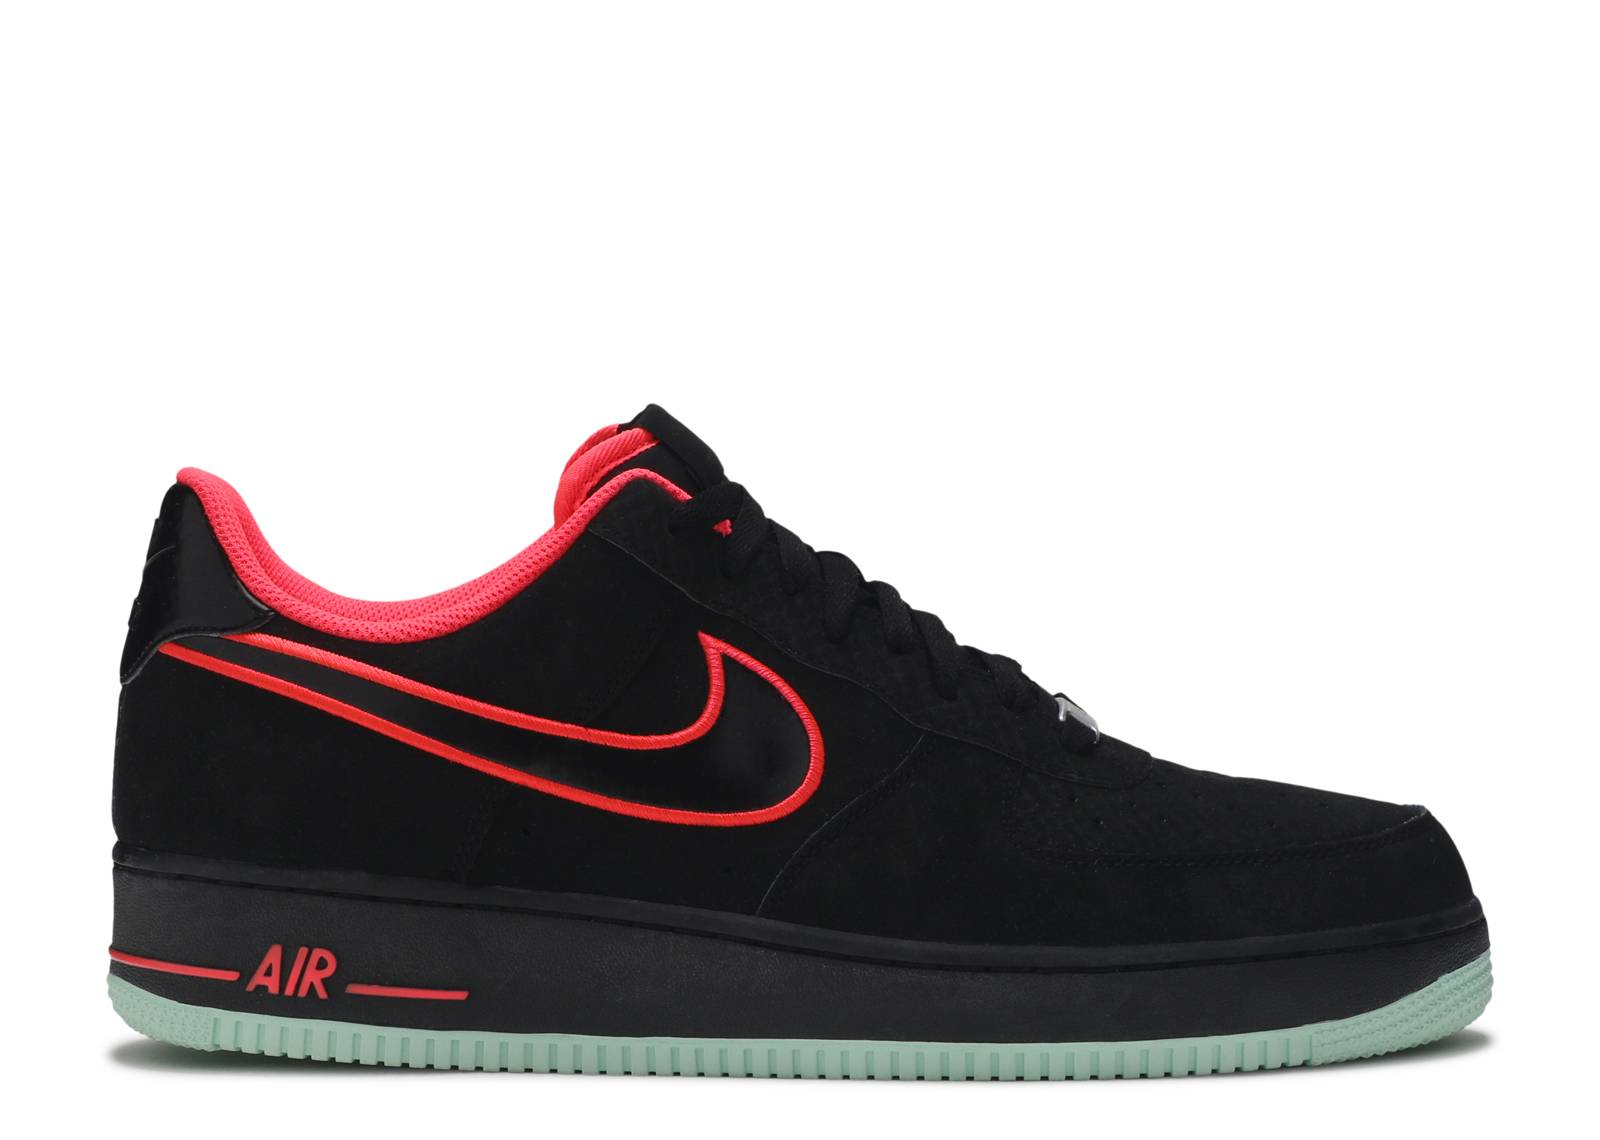 Nike Air Force 1 Yeezy